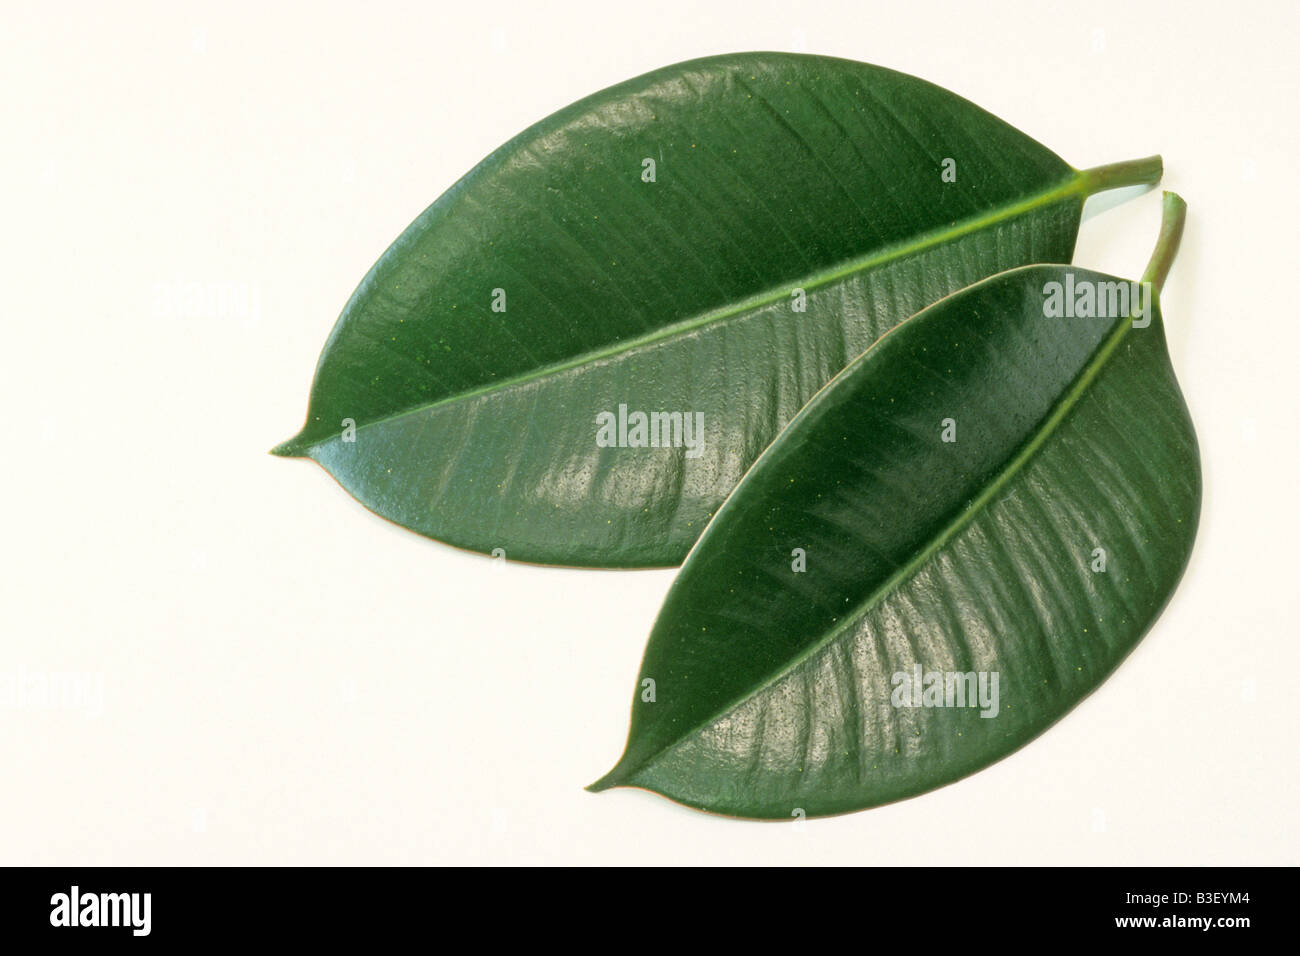 India Rubber Tree, Rubber Fig (Ficus Elastica), Two Leaves, Studio Picture